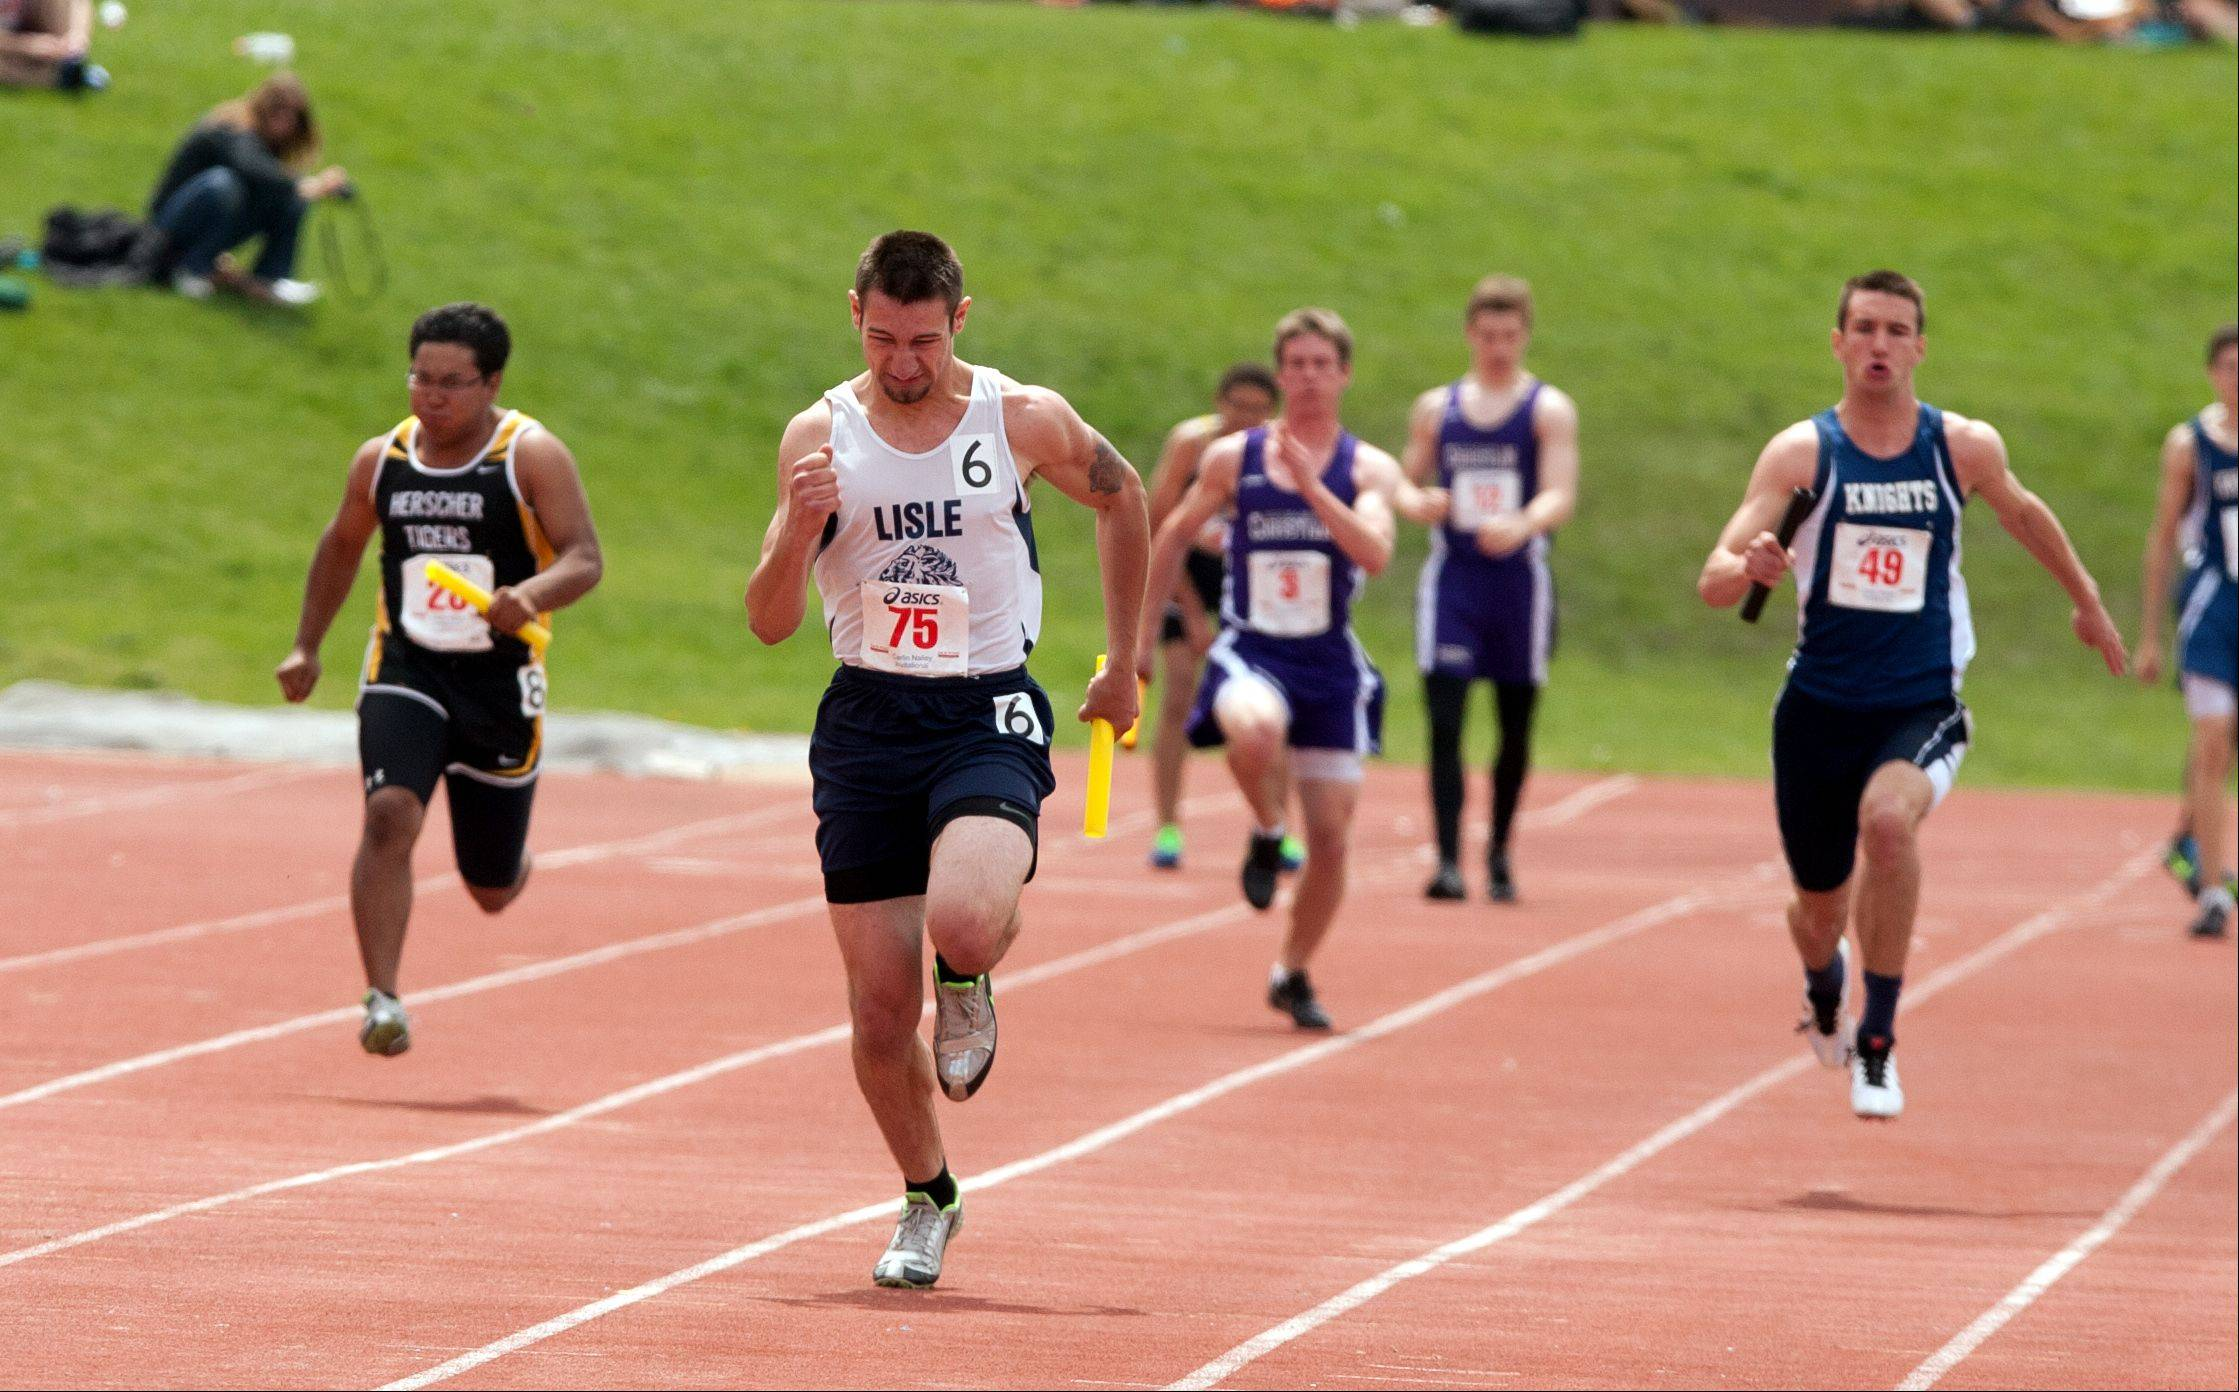 Lisle's Nick Rizzotti anchors a 4x100 meter relay win during the 46th annual Carlin Nalley Boys´ Track Invitational at Benedictine University in Lisle.